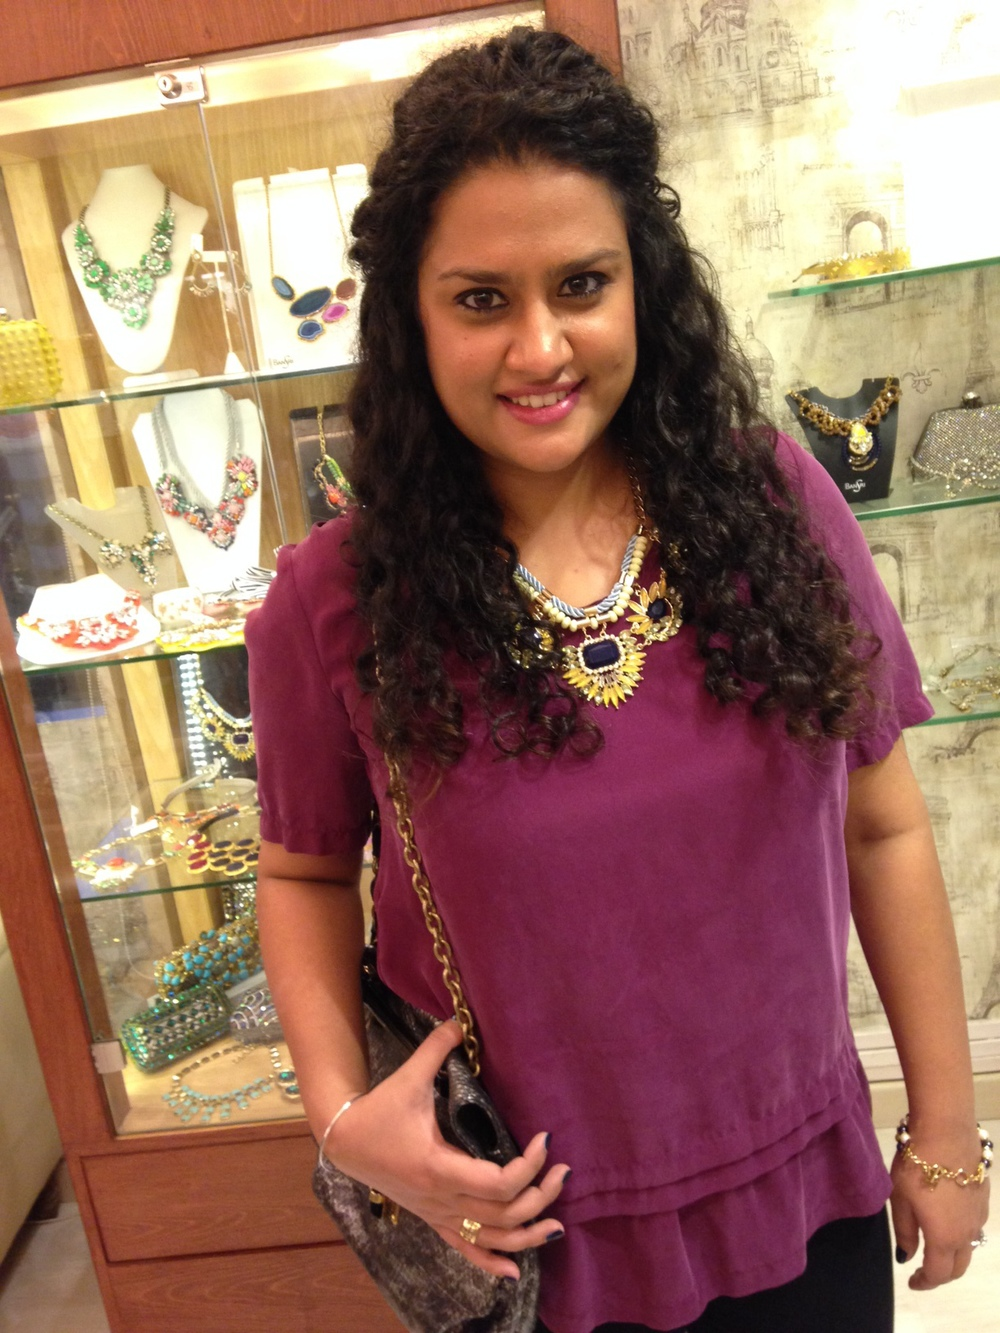 Moi, at the Bansri Jewellery Lounge wearing a piece from Bansri Mehta's latest collection